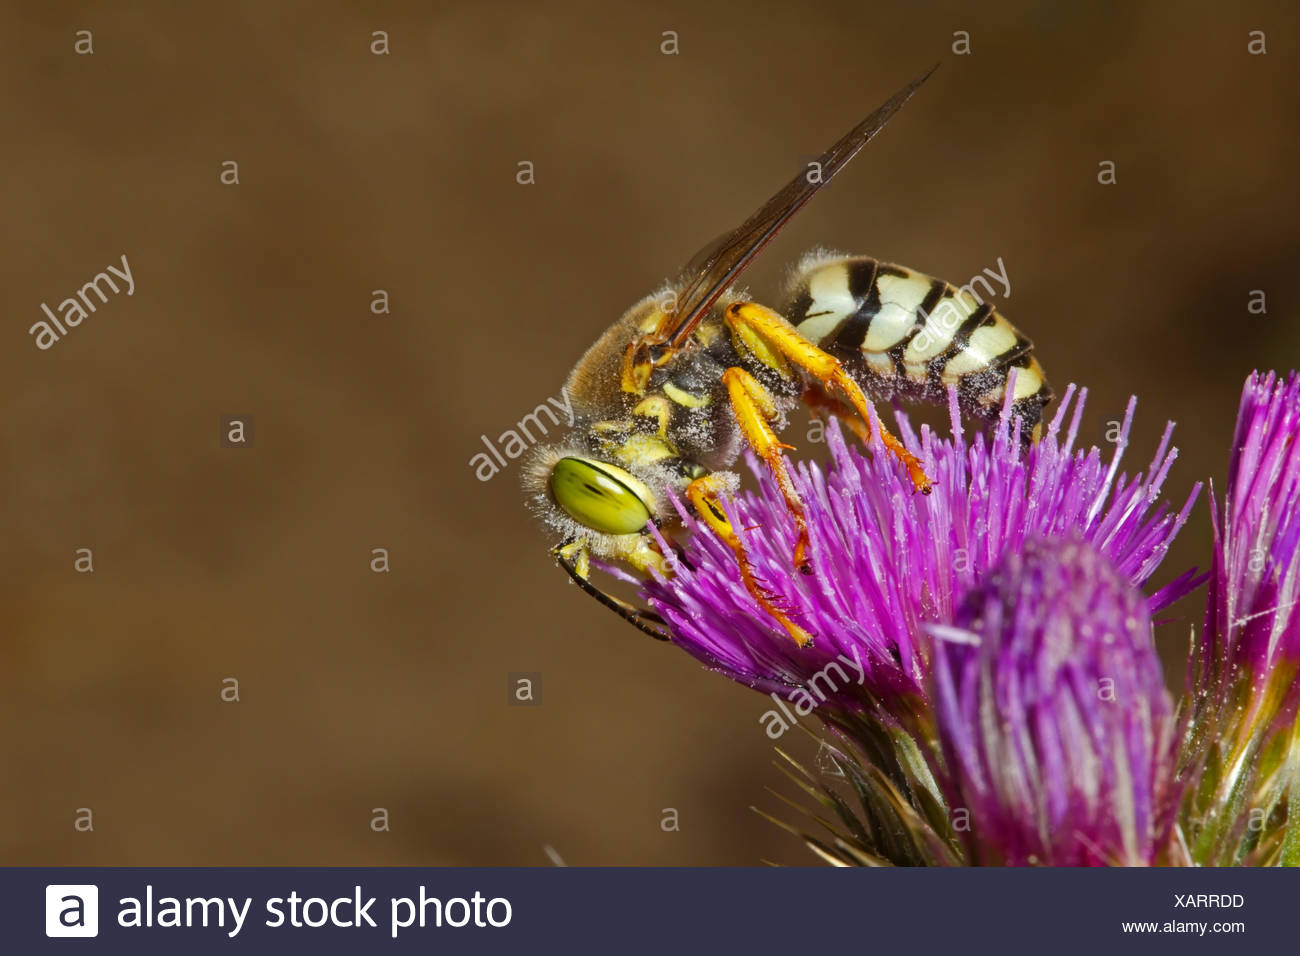 Bembix rostrata - a protected species of sand wasp - Stock Image